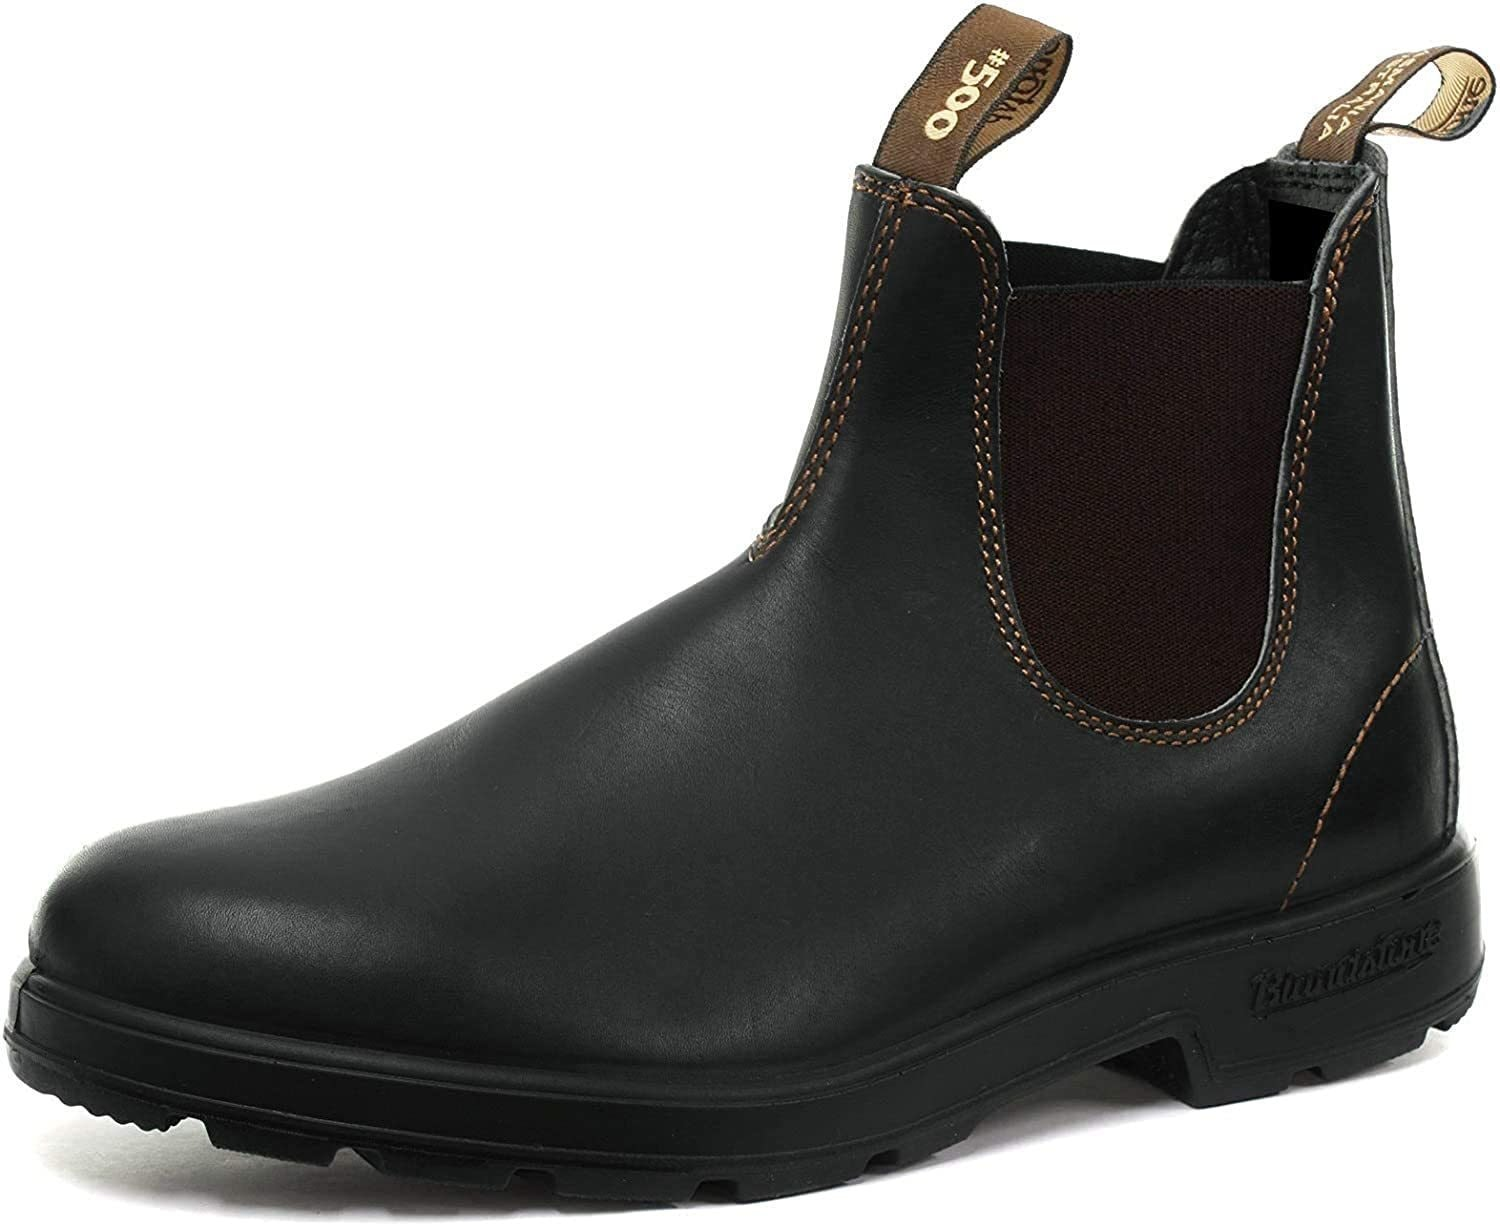 Blundstone Ankle Boot